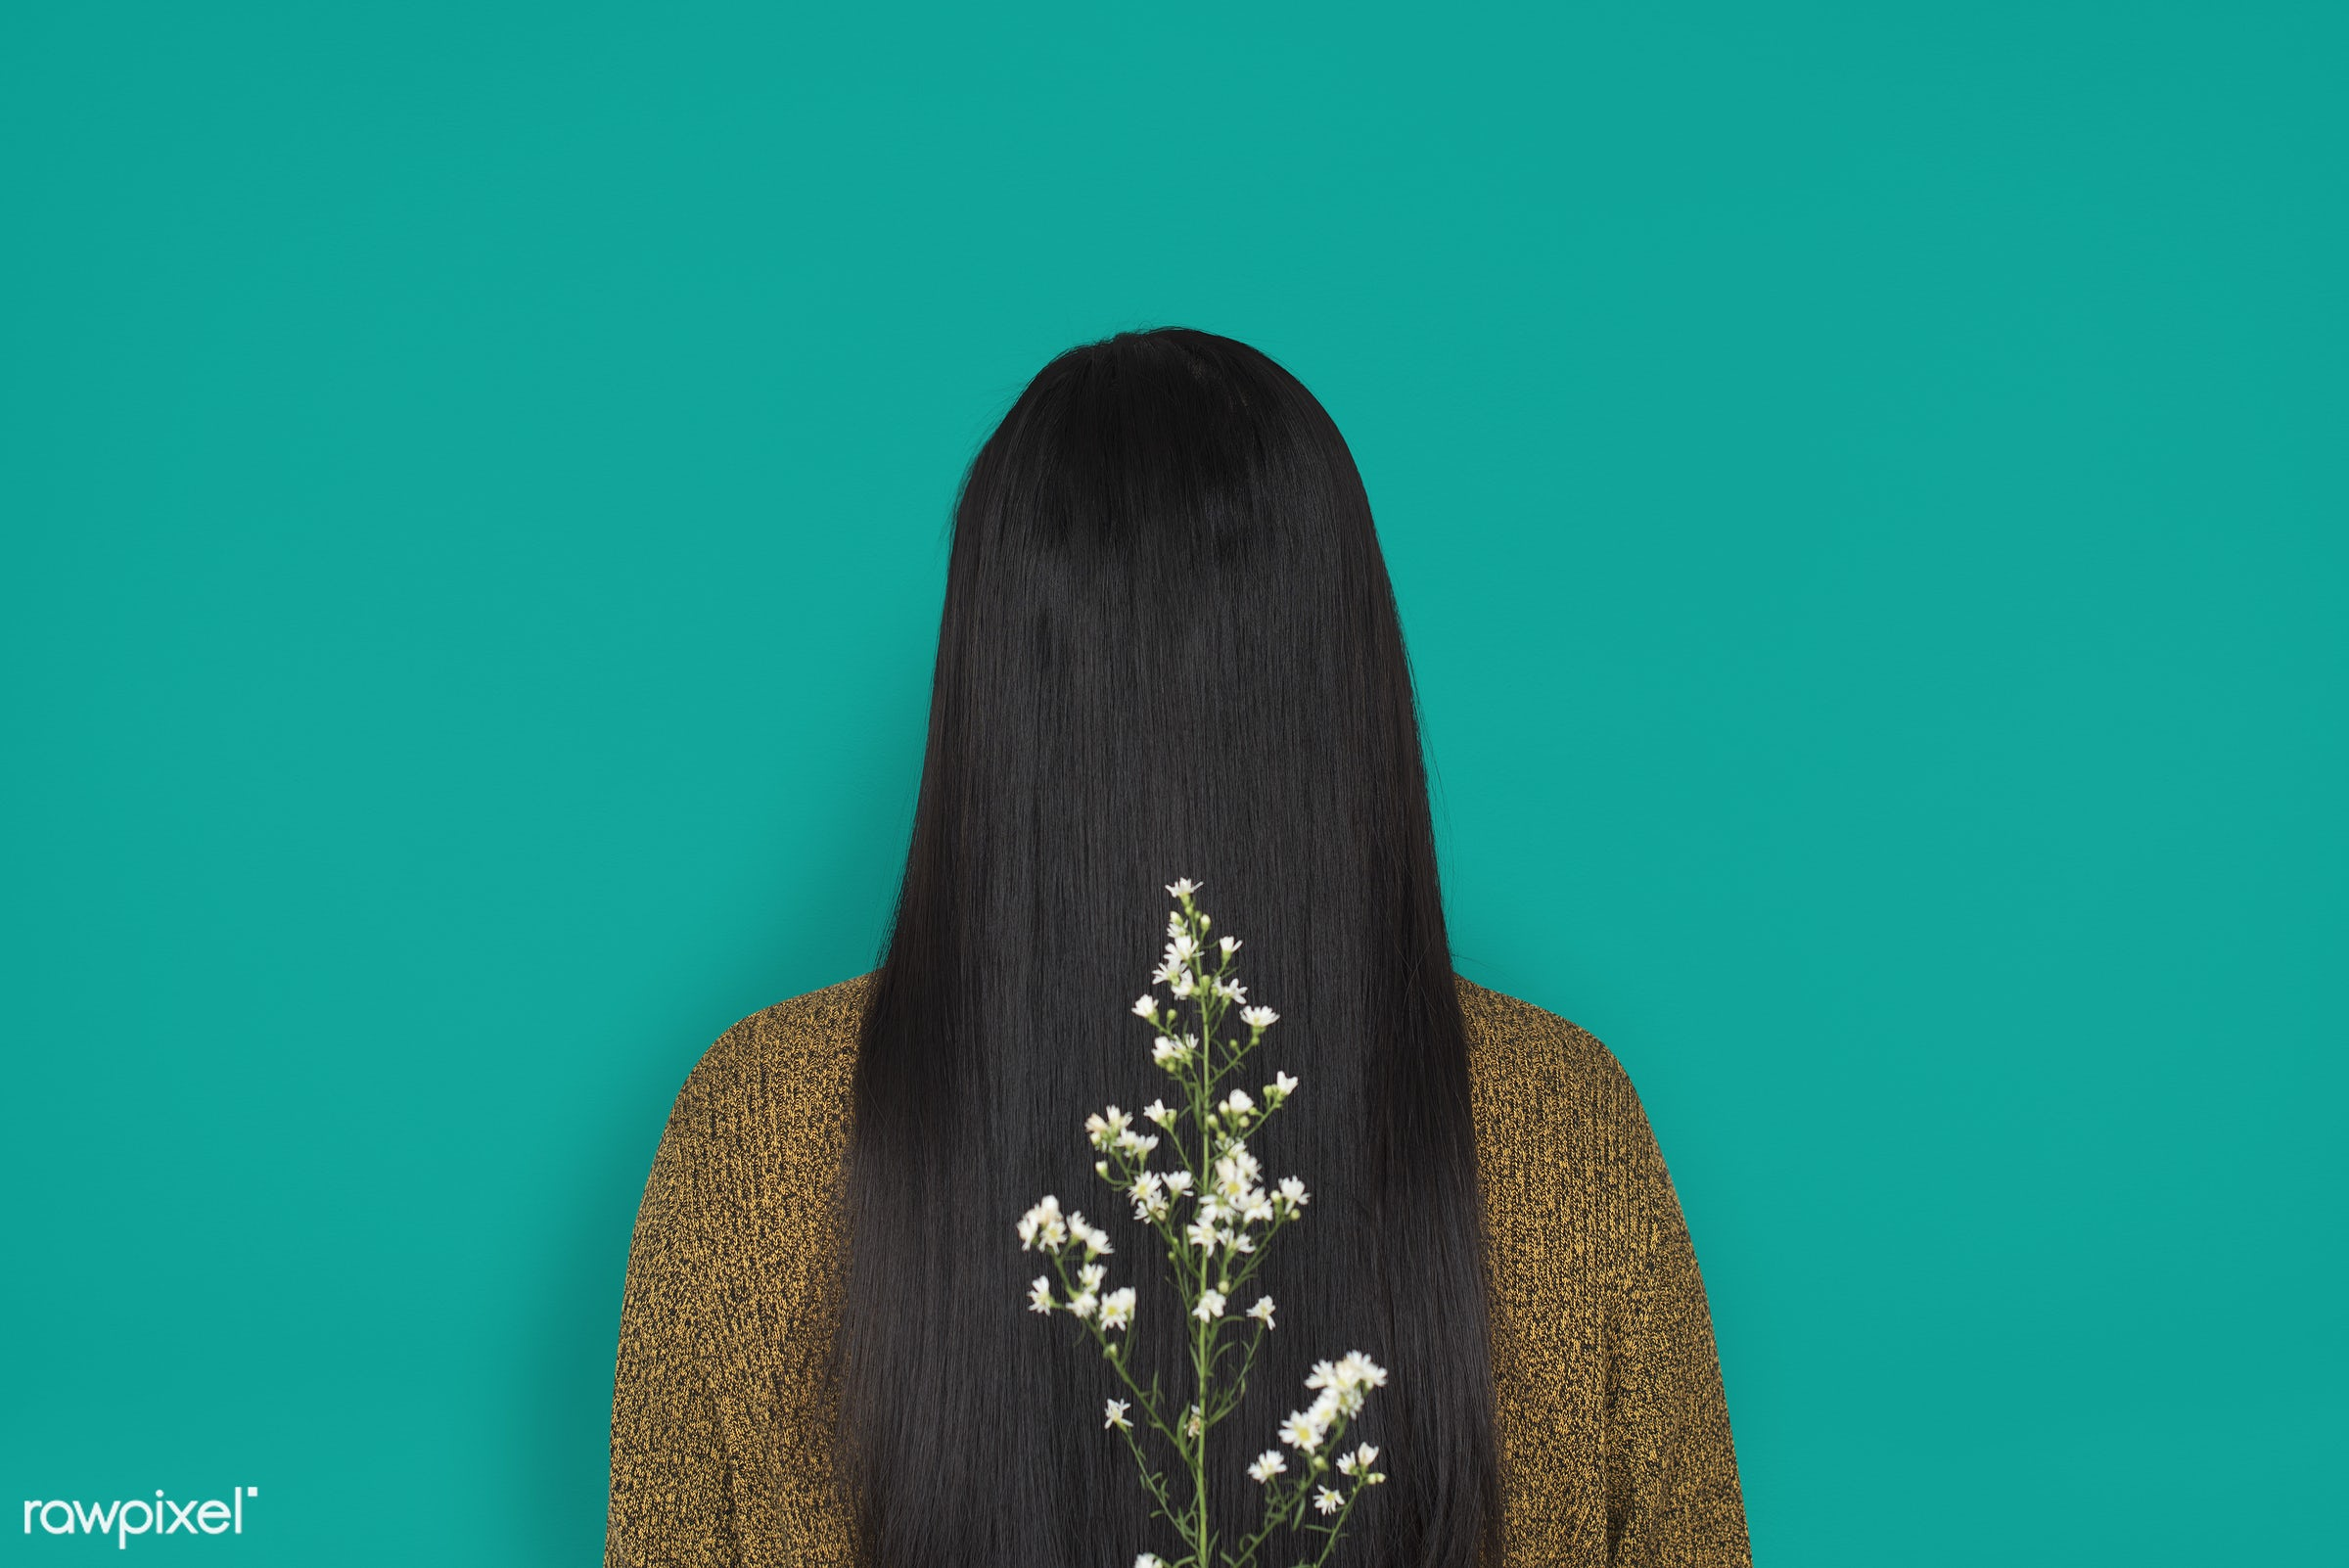 studio, person, people, girl, woman, casual, flower, rear view, isolated, flora, green, long hair, adult, portrait, charming...